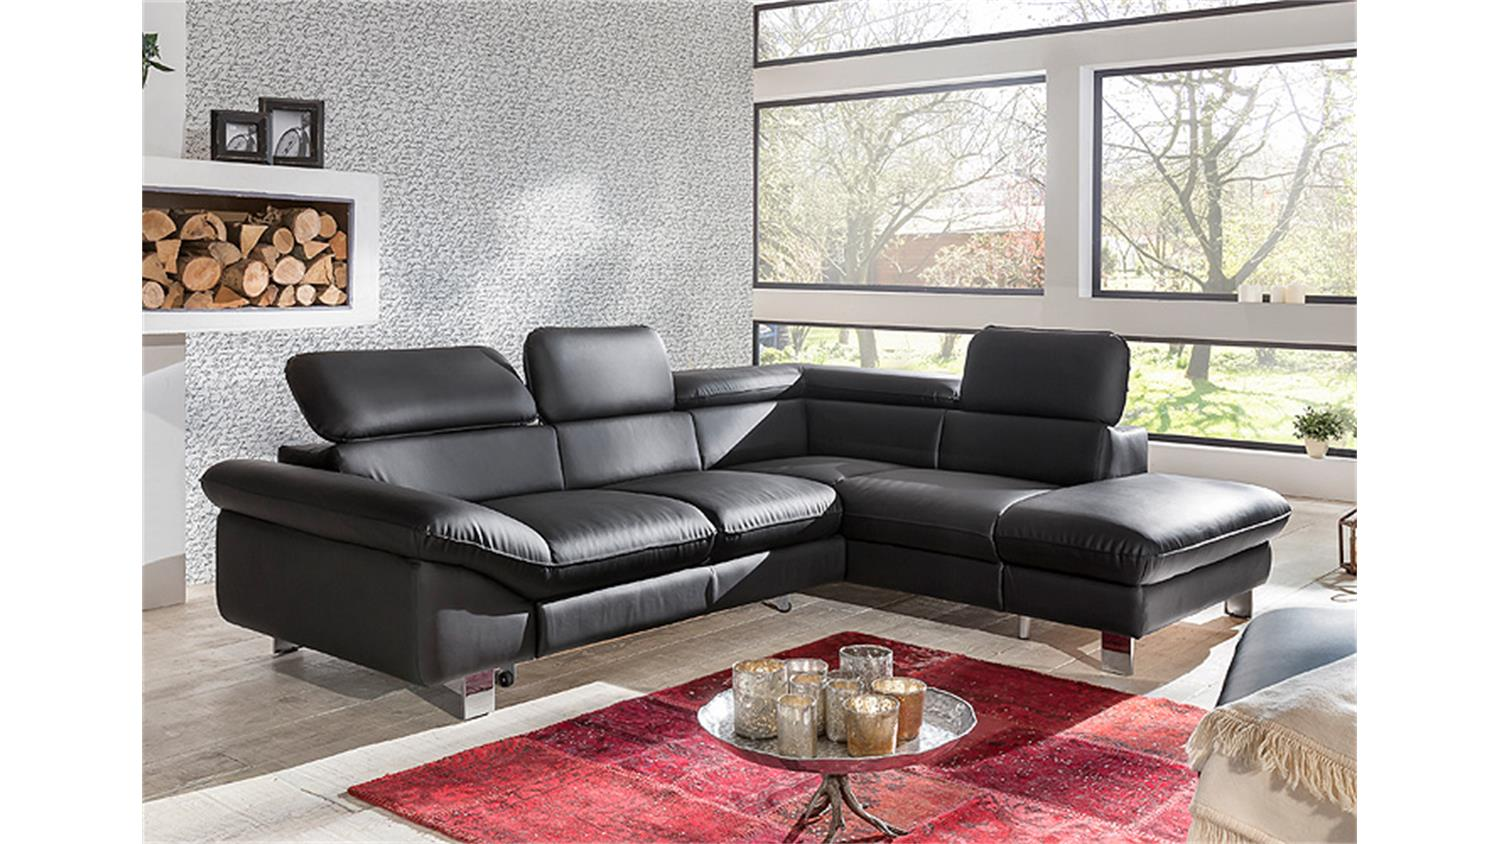 ecksofa driver sofa polsterecke schwarz mit bettfunktion. Black Bedroom Furniture Sets. Home Design Ideas